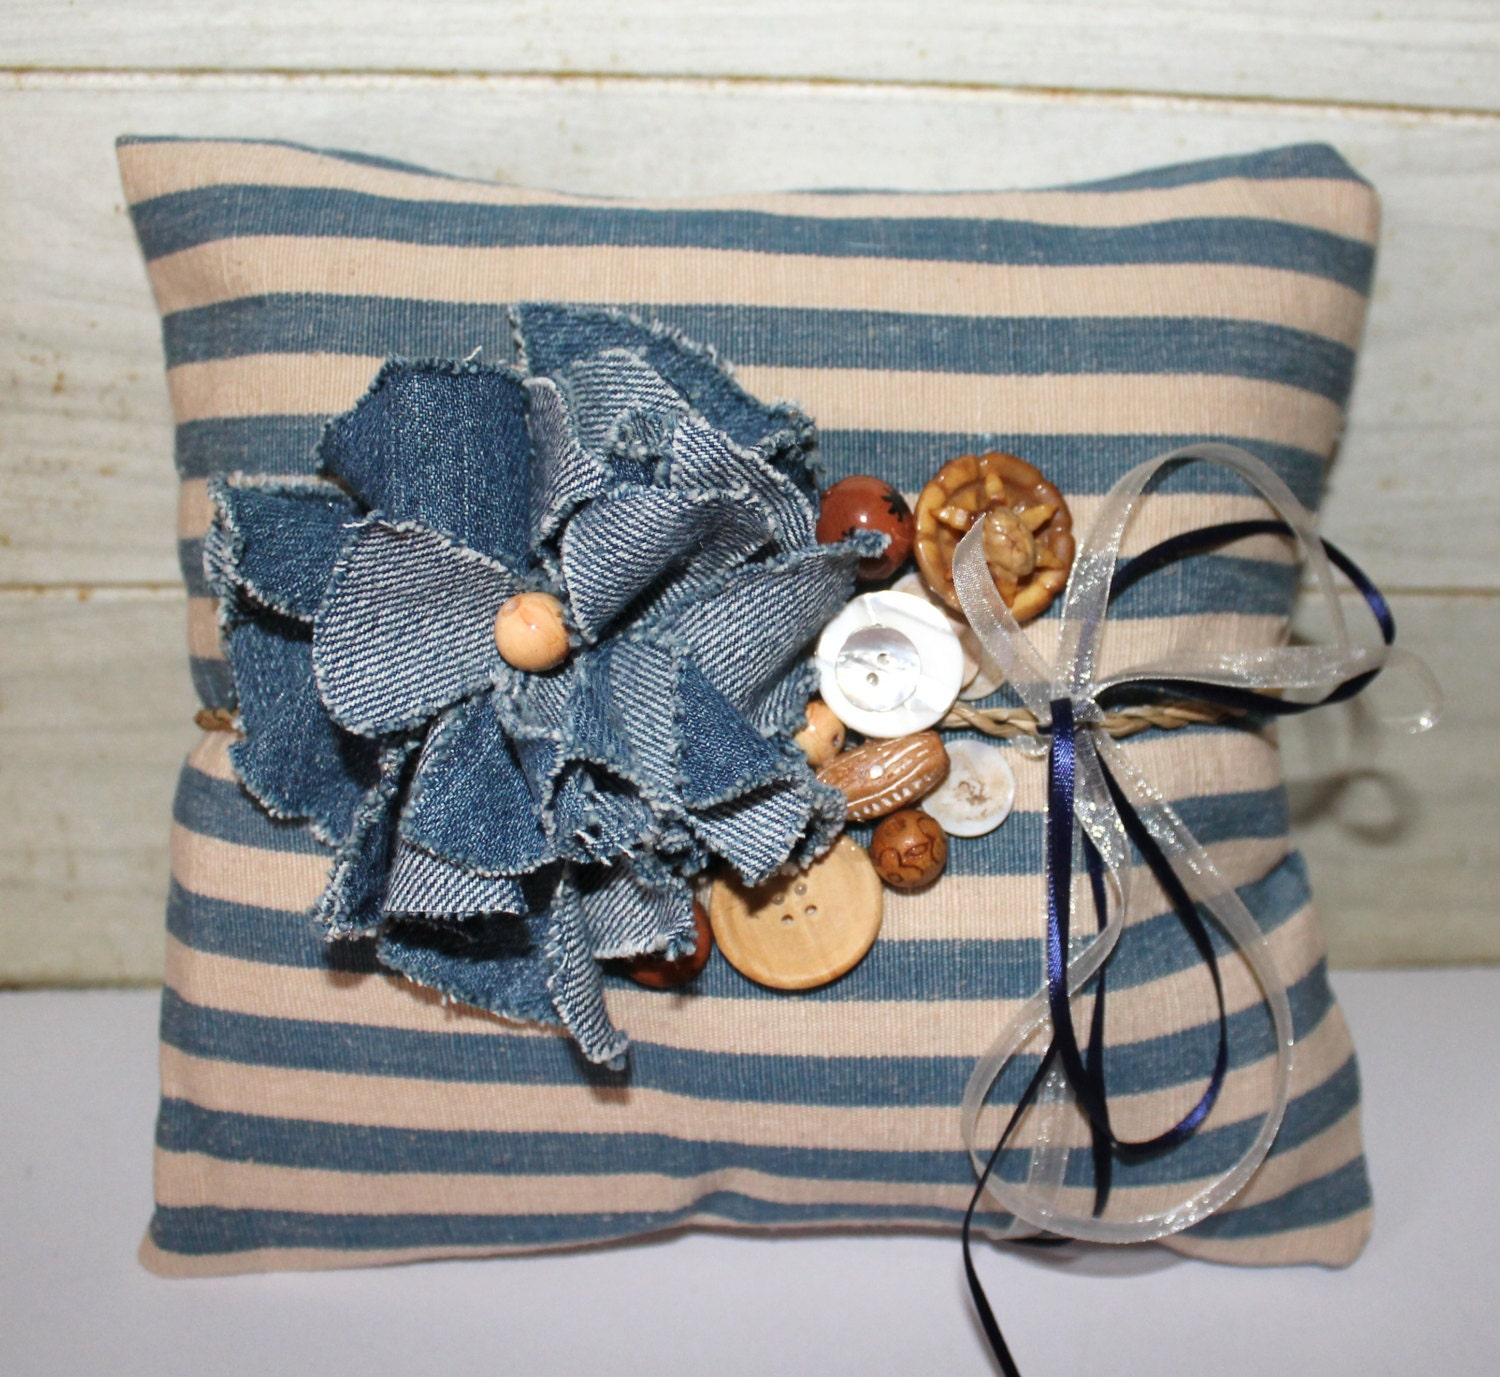 Wedding Ring Pillow - Rustic Chic - Denim - Beach Cottage - Blue - Repurposed - Vintage - Stripes